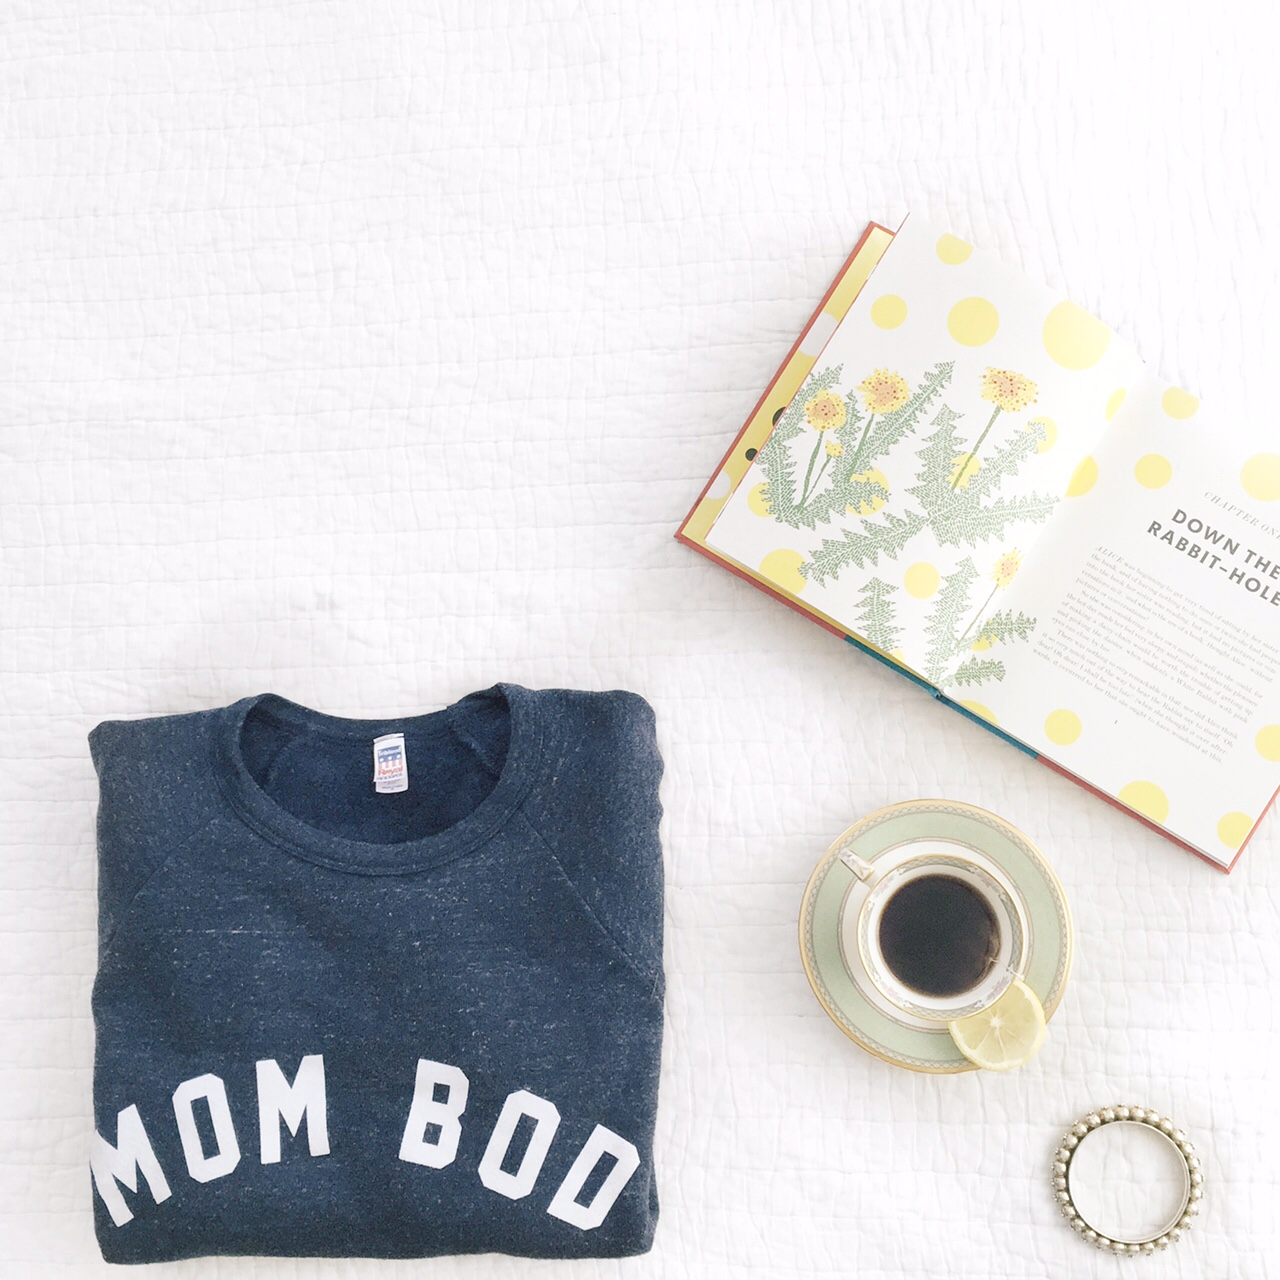 Super soft mom bod sweatshirt from glam camp